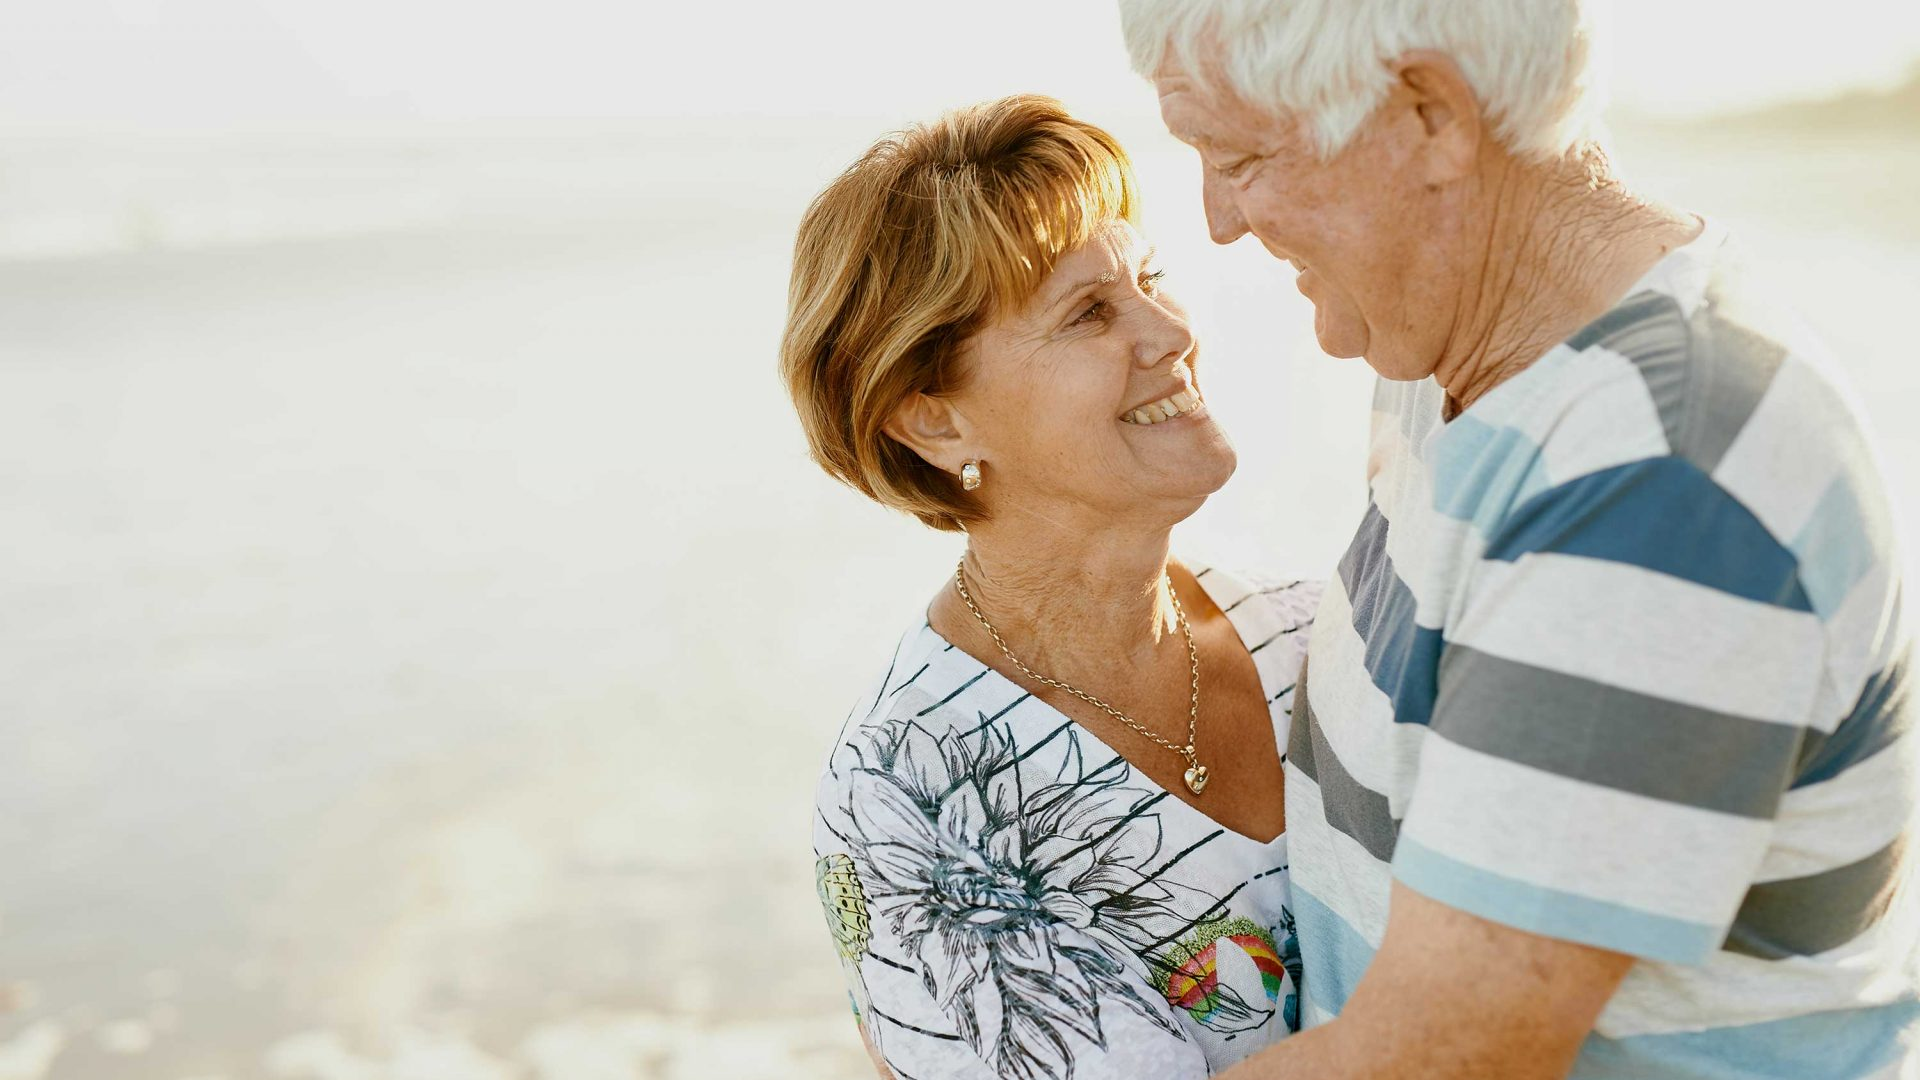 Our over 55s community will give you security